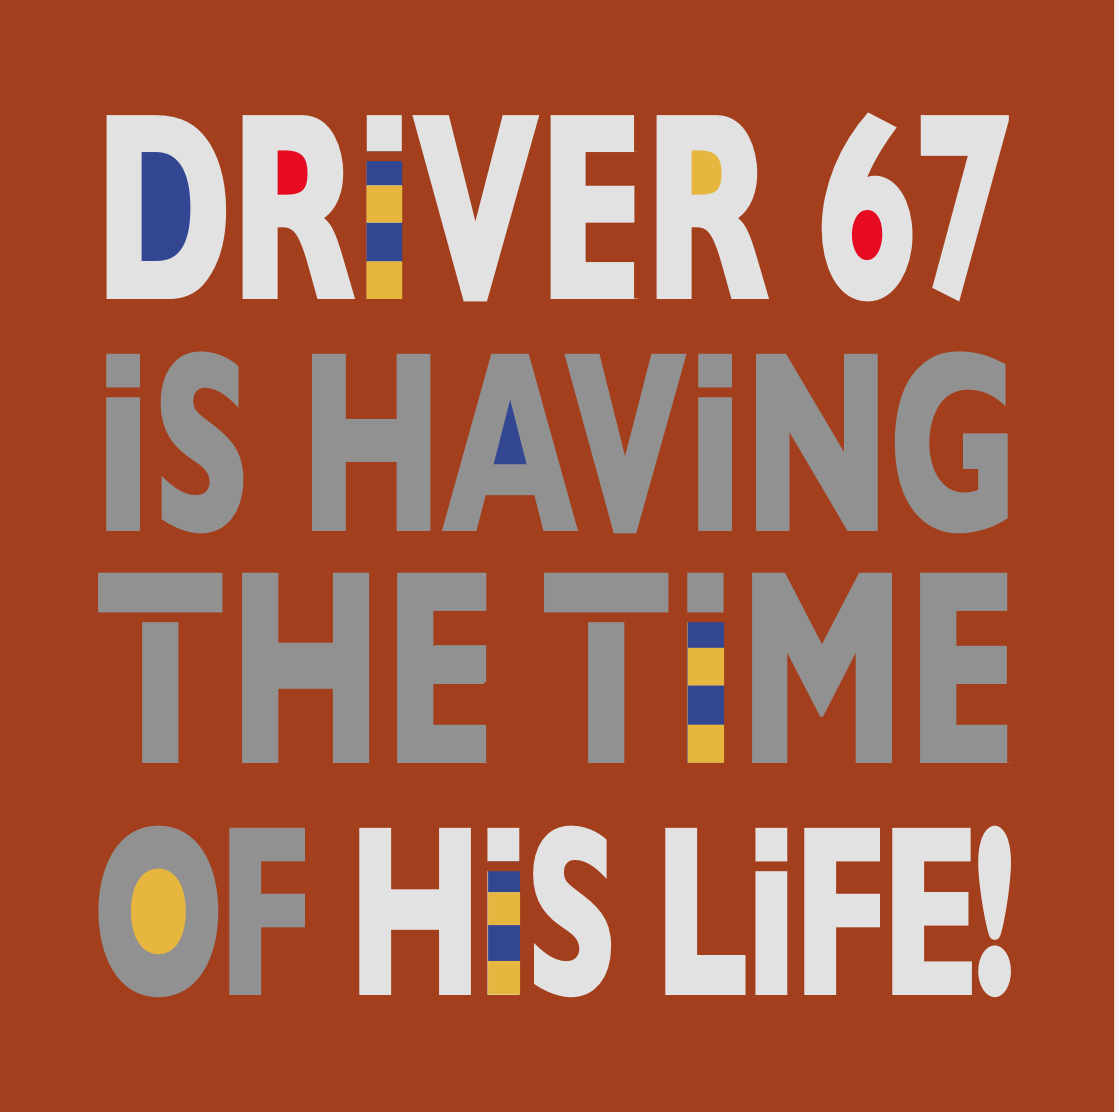 Life driver 67 screen shot 2015 11 11 at 150907 hexwebz Image collections